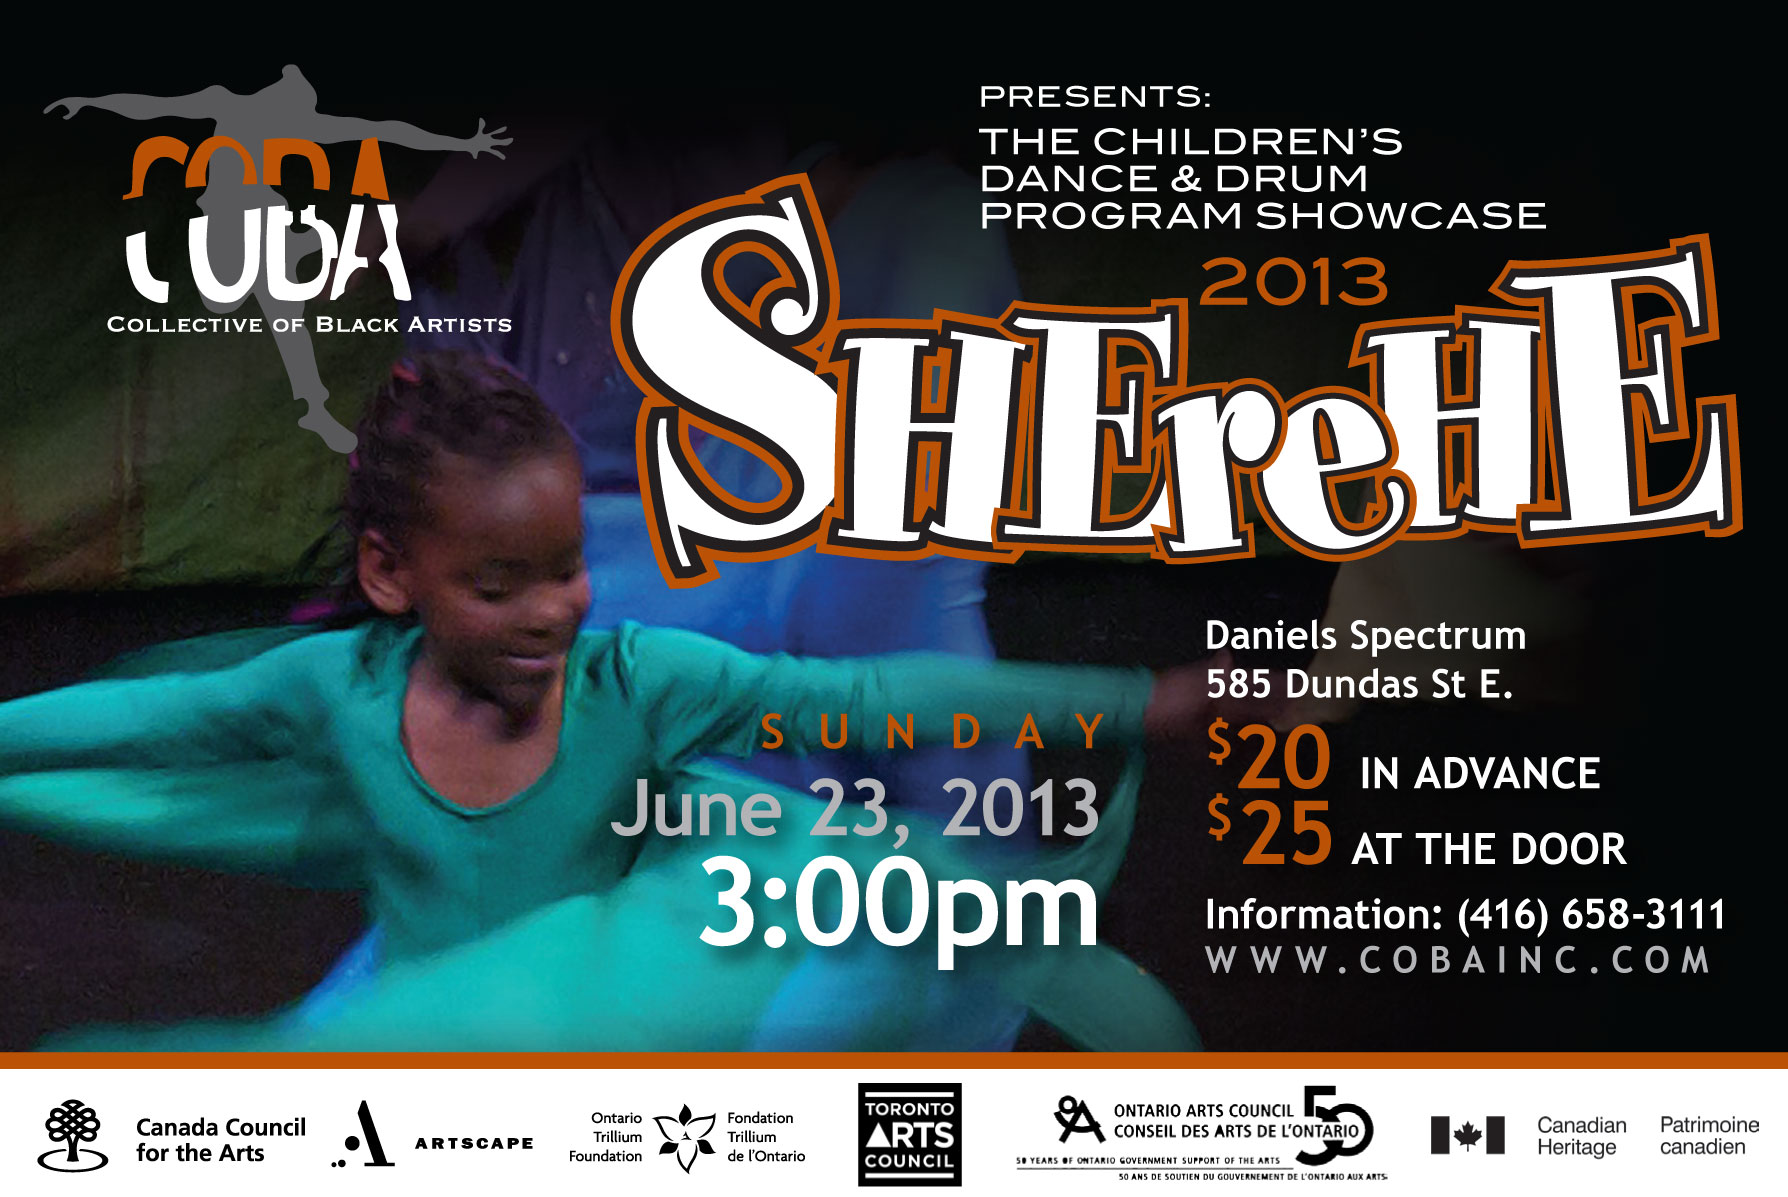 COBA presents the Children's Dance and Drum Program Showcase, SHEreHE 2013